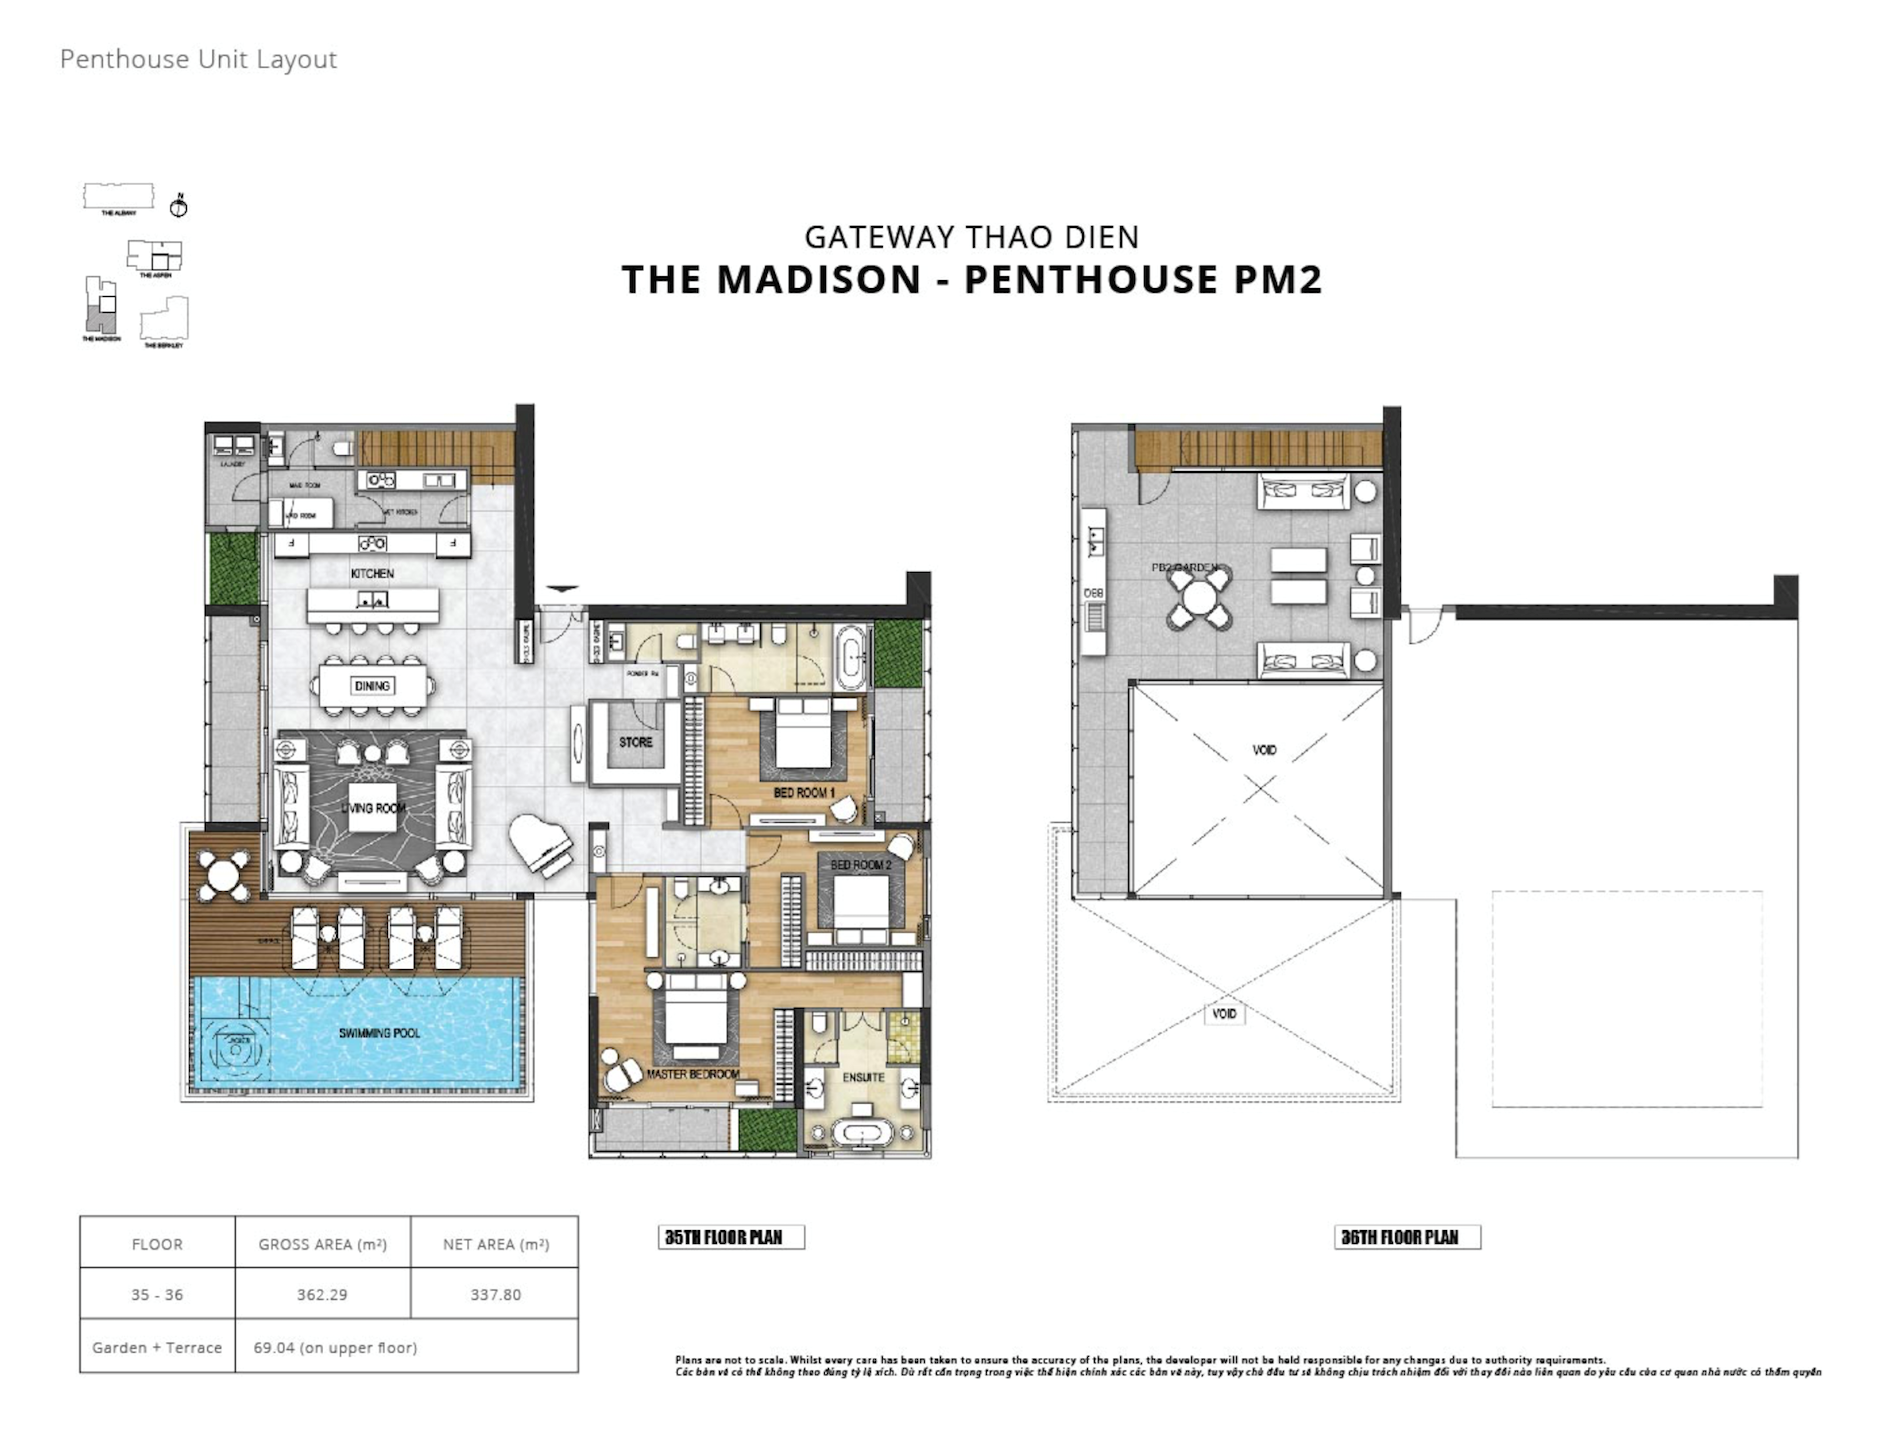 https://saos.vn/Uploads/t/pe/penthouse-gateway-thao-dien-duplex-penthouse-the-madison-pm2_0014024.png